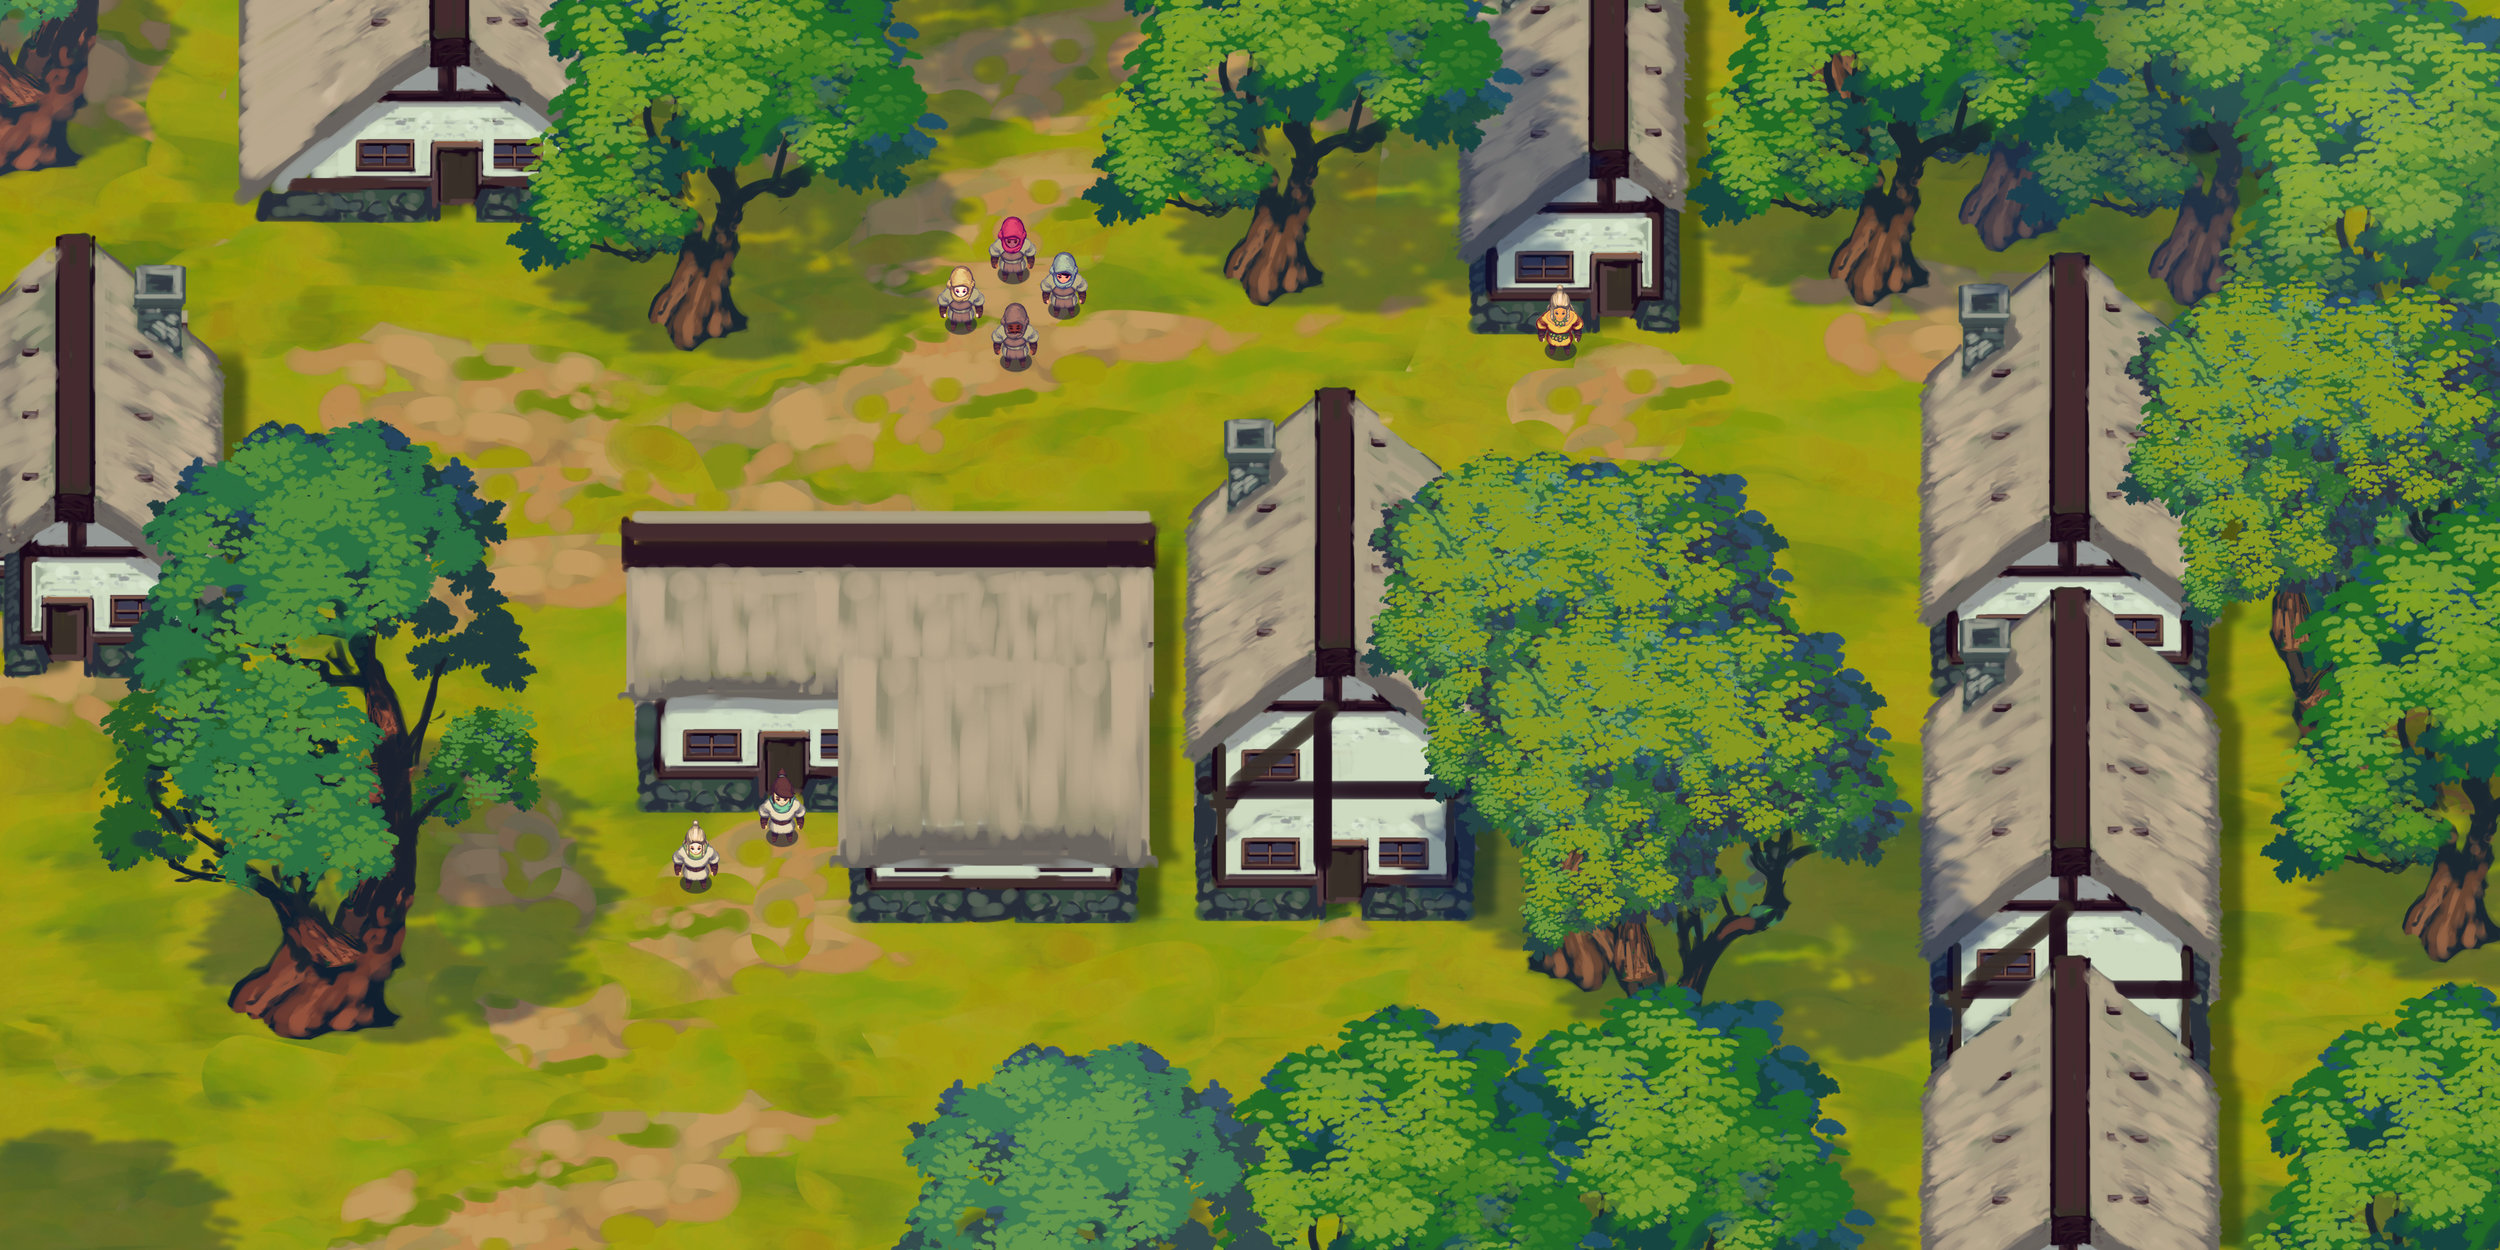 forest_town_001.jpg